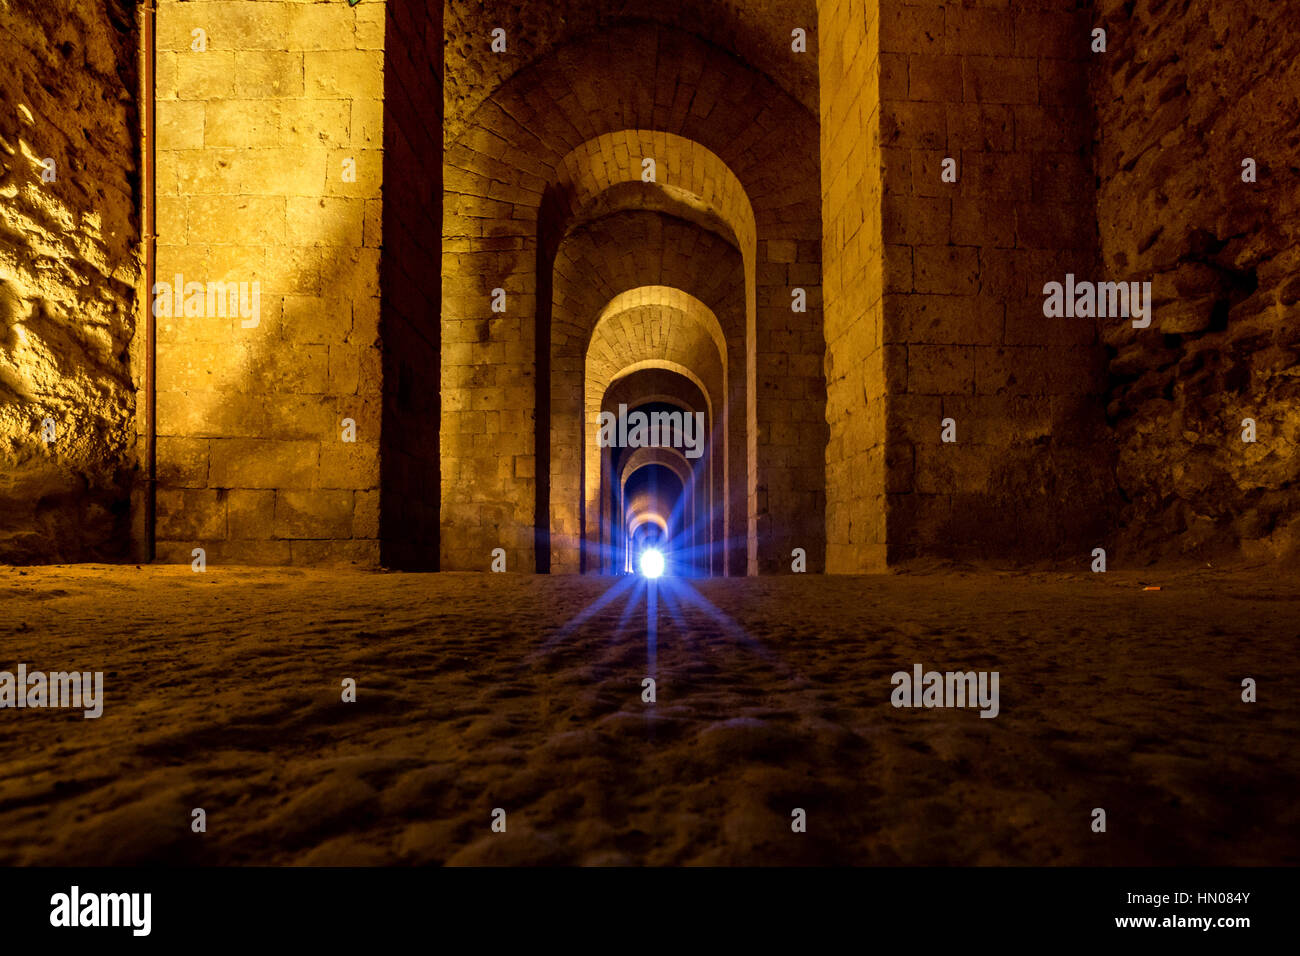 Naples (Italy) - Pausilypon archaelogical site. Entrance to the site is through a 770 meter tunnel, the Grotta di - Stock Image